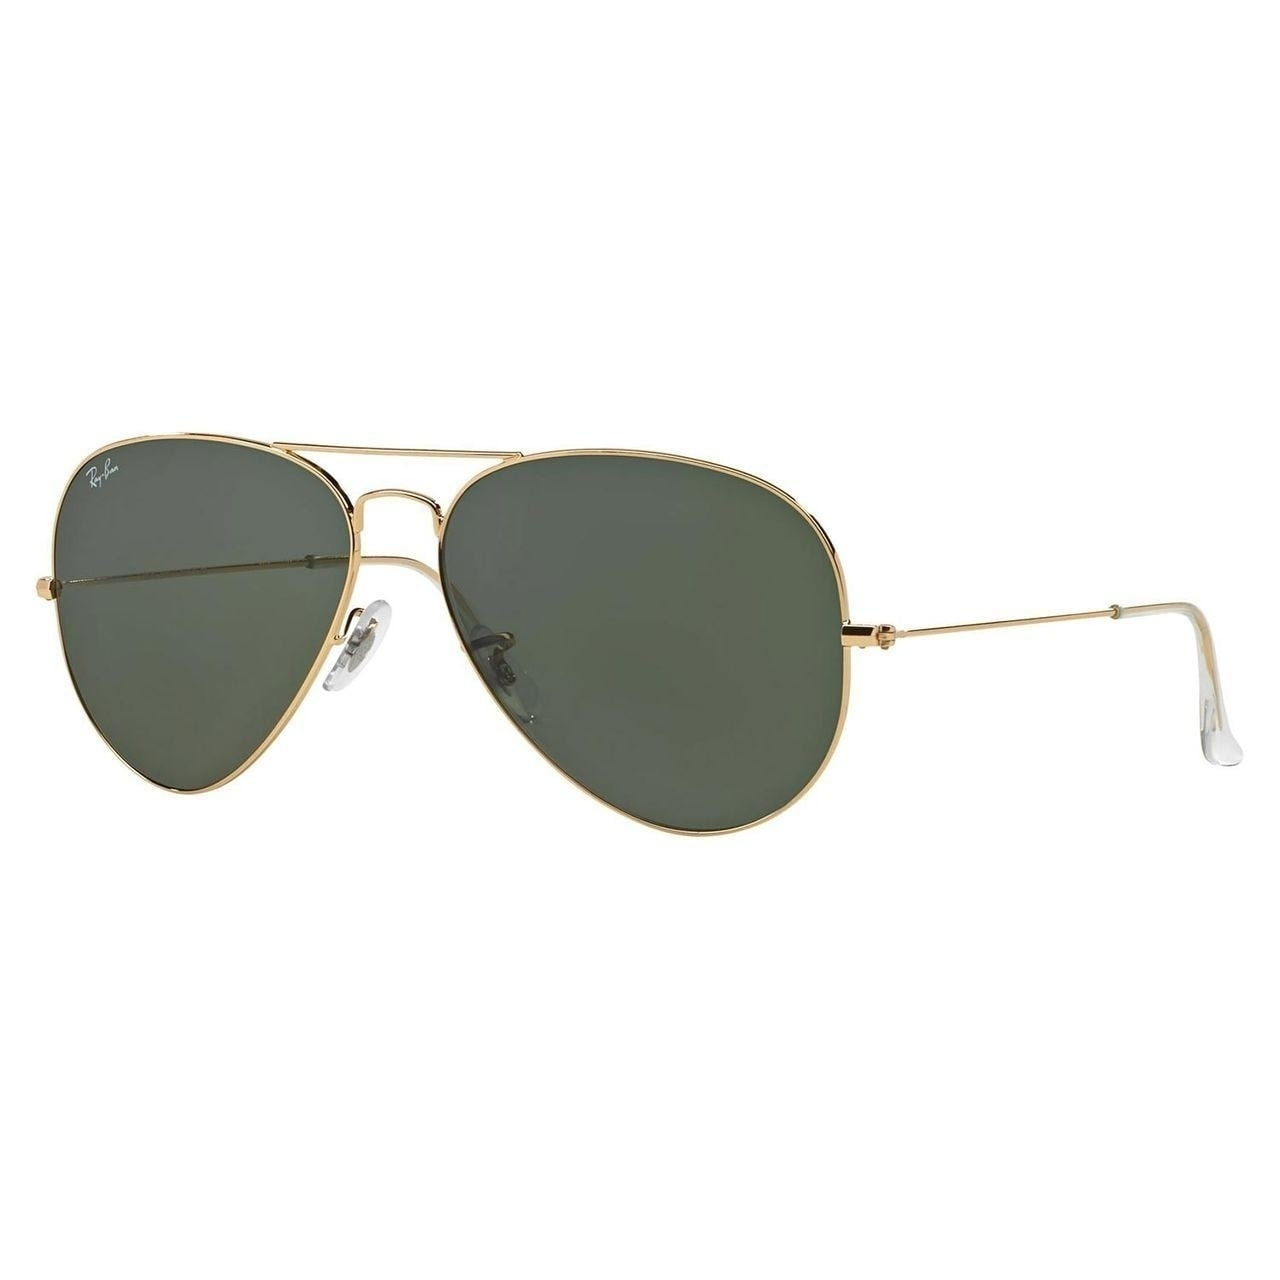 9cef7dac478 Shop Ray-Ban Aviator Classic RB3025 Unisex Gold Frame Green Lens Sunglasses  - Free Shipping Today - Overstock.com - 10482576